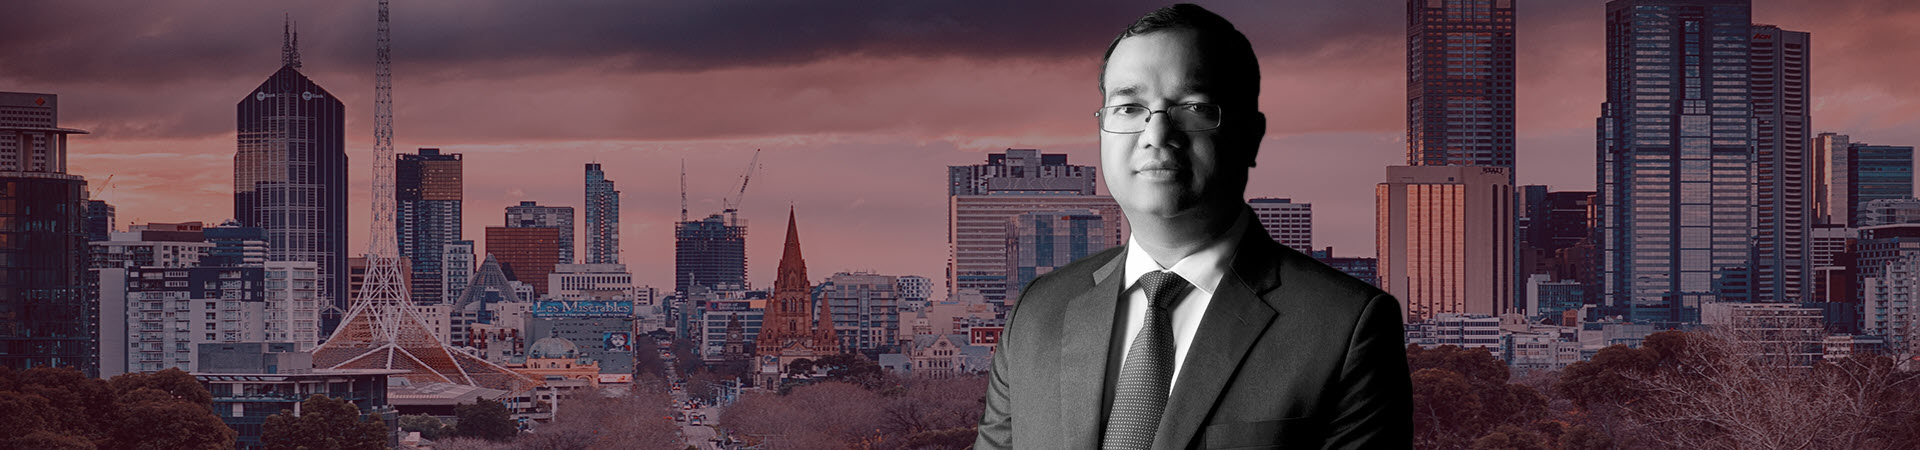 arvind_jain_orthopaedic_surgeon_melbourne